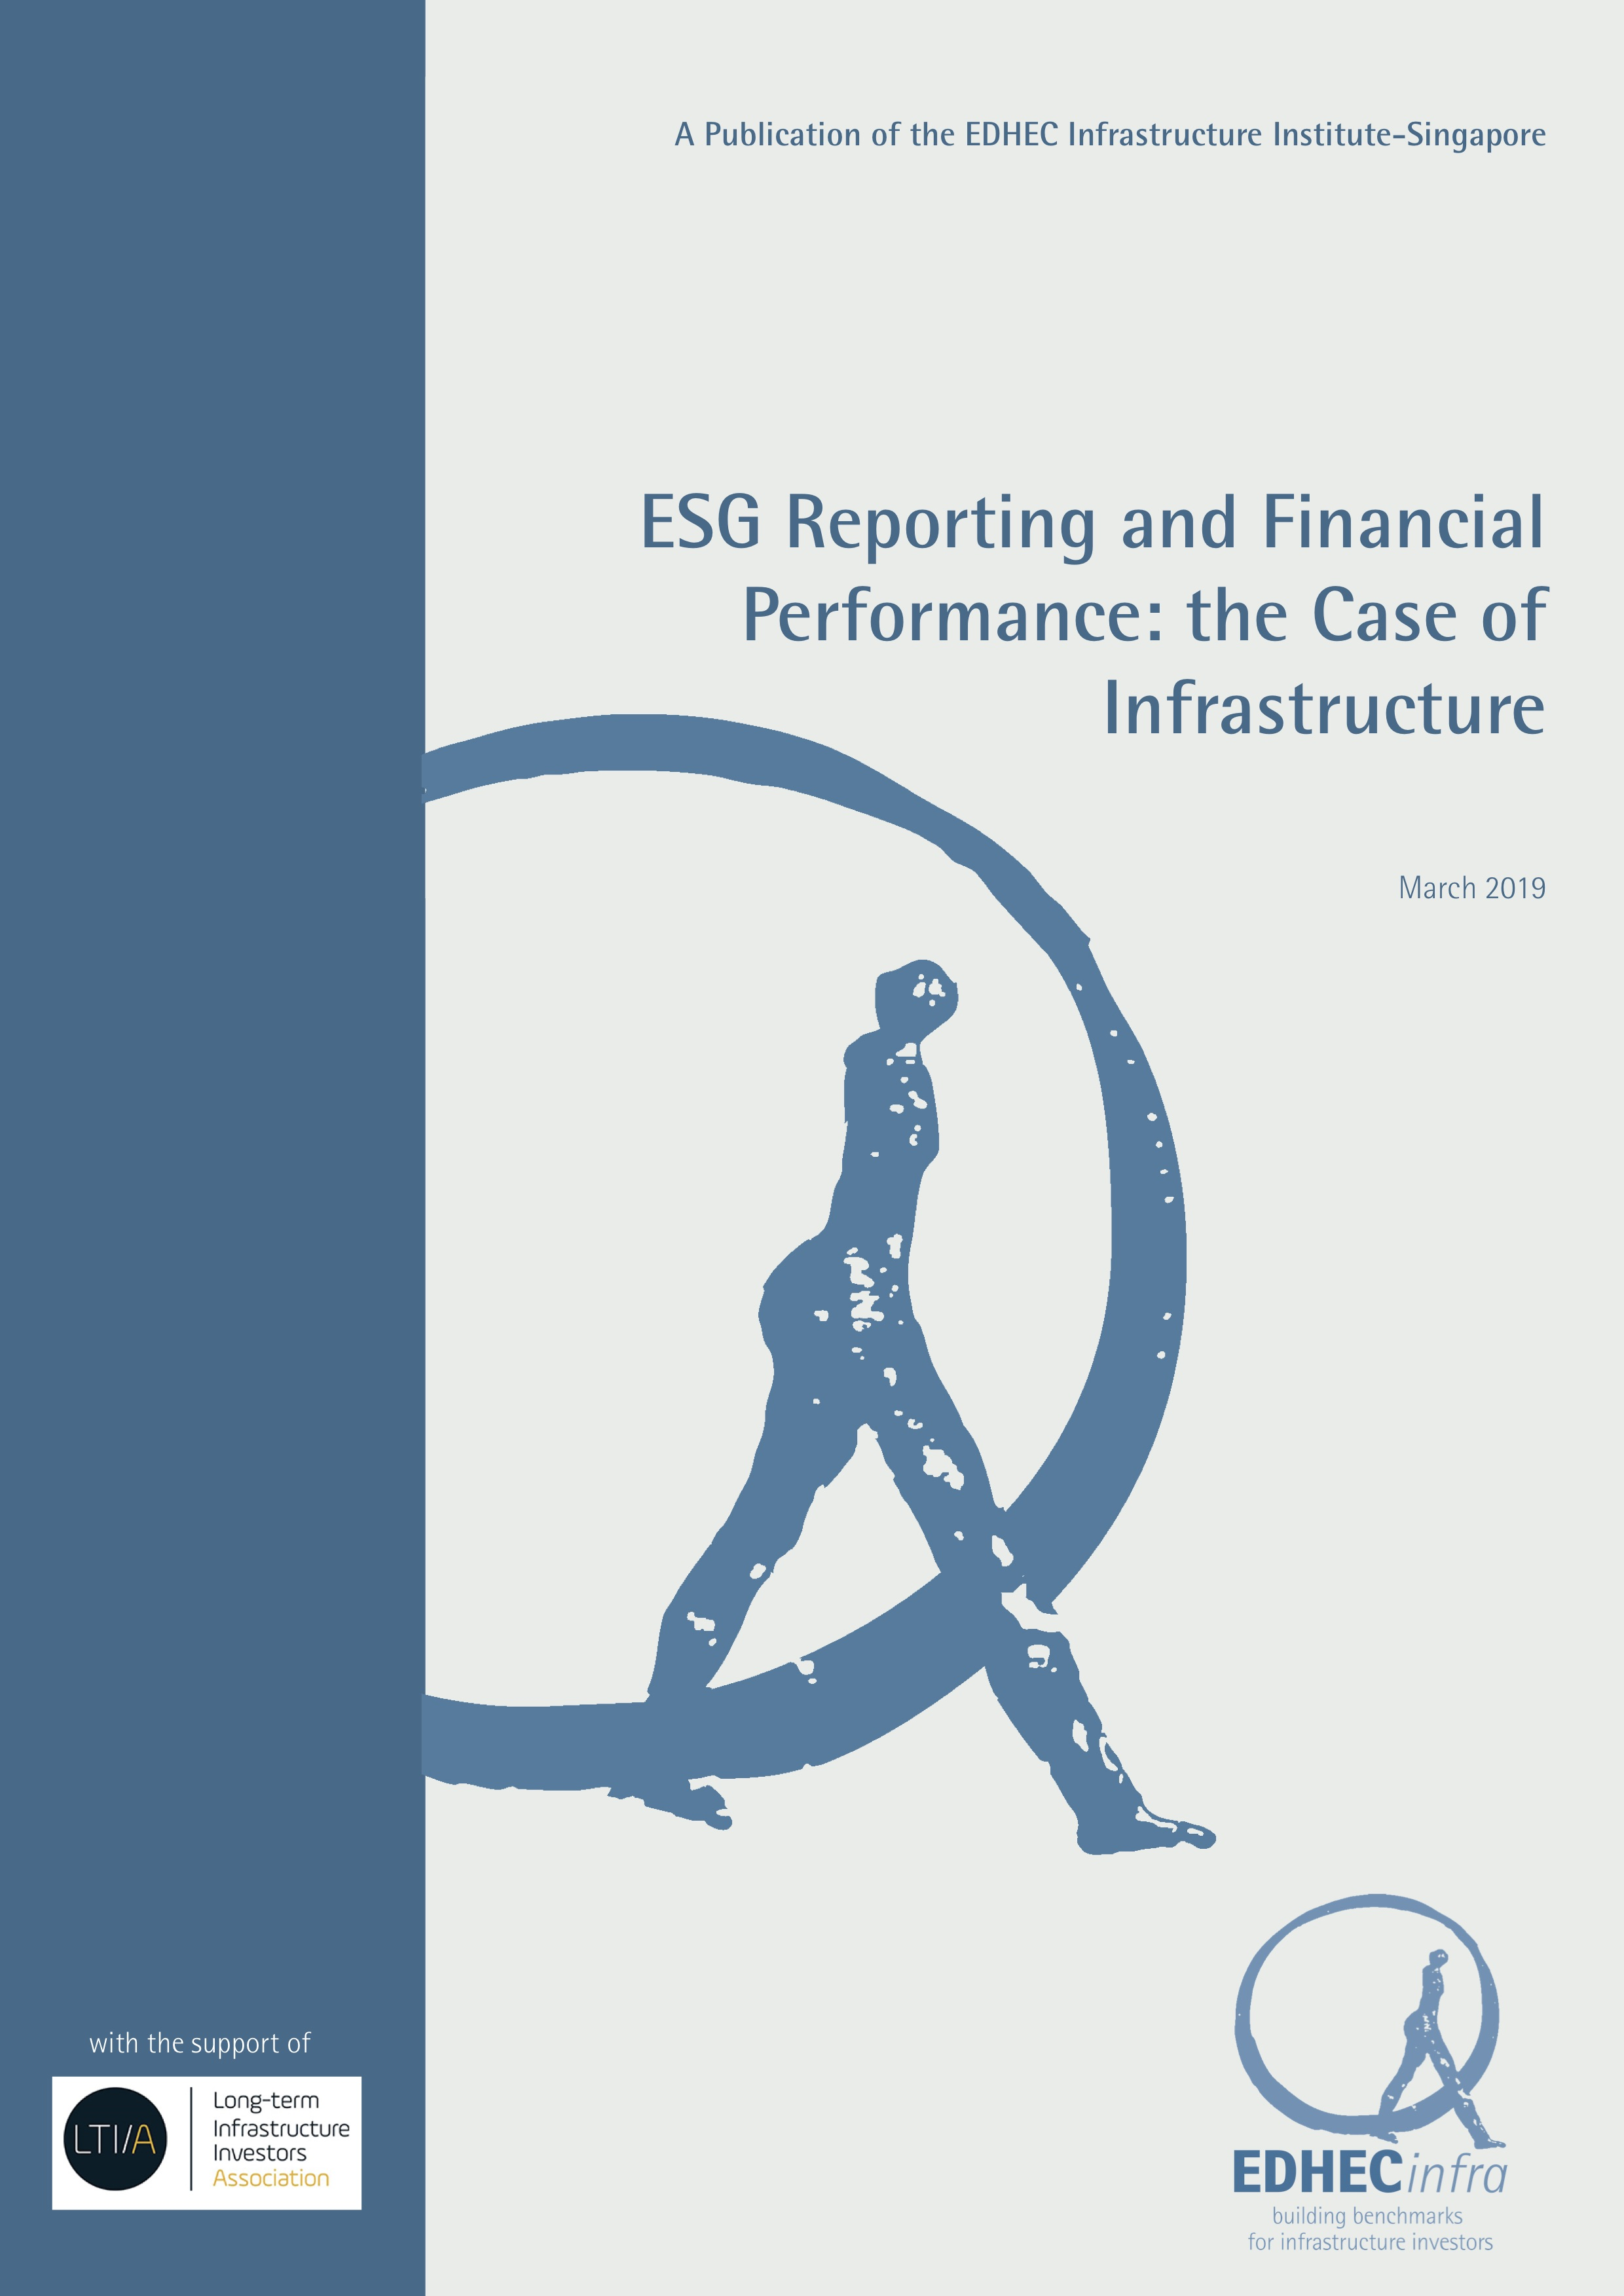 ESG Reporting and Financial Performance: the Case of Infrastructure